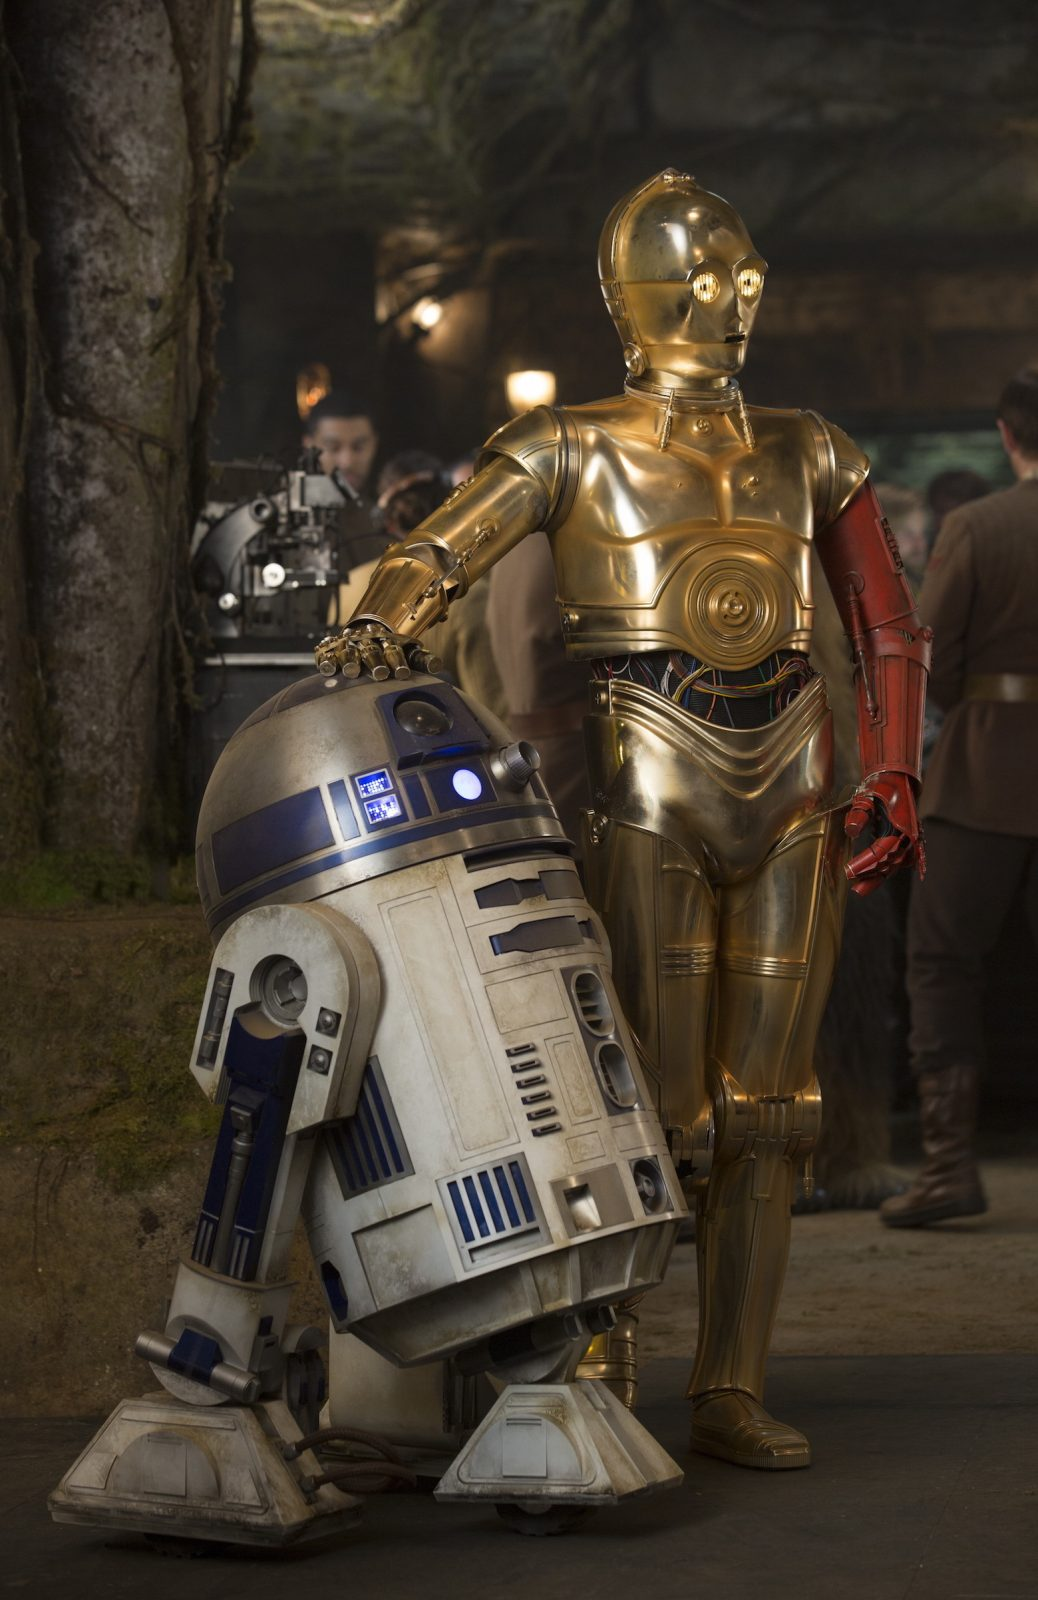 Star Wars VII The Force Awakens 9 - C-3PO with Red Arm and R2-D2